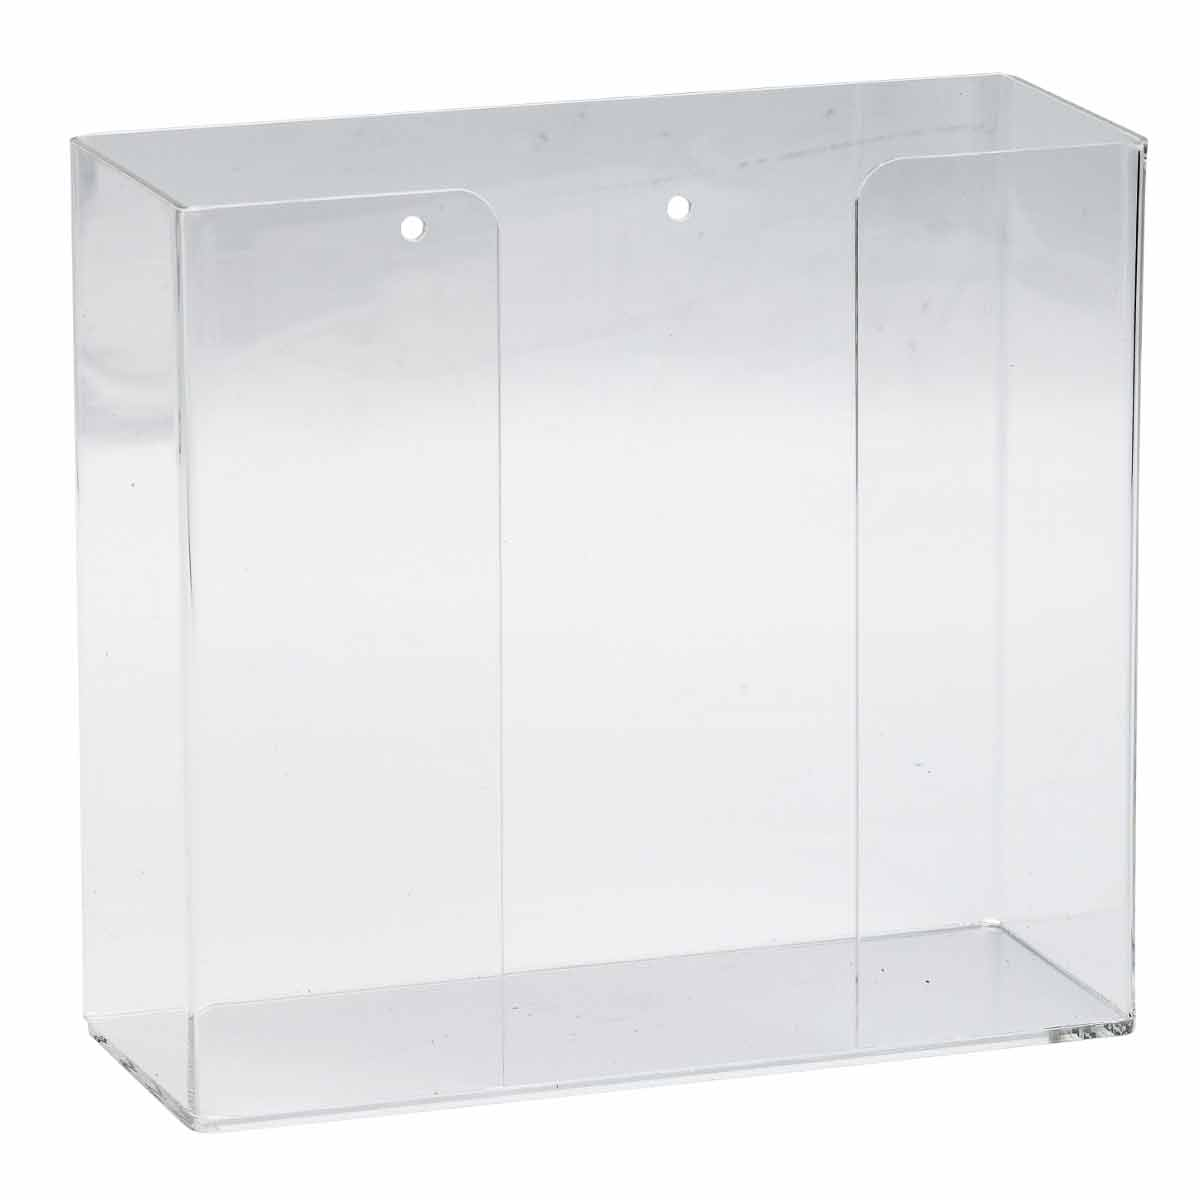 Brady® GD01 1-Box Glove Dispenser, 1 Compartment, Surface/Wall Mount, Hinged Top Dispensing, Acrylic Glass, Clear